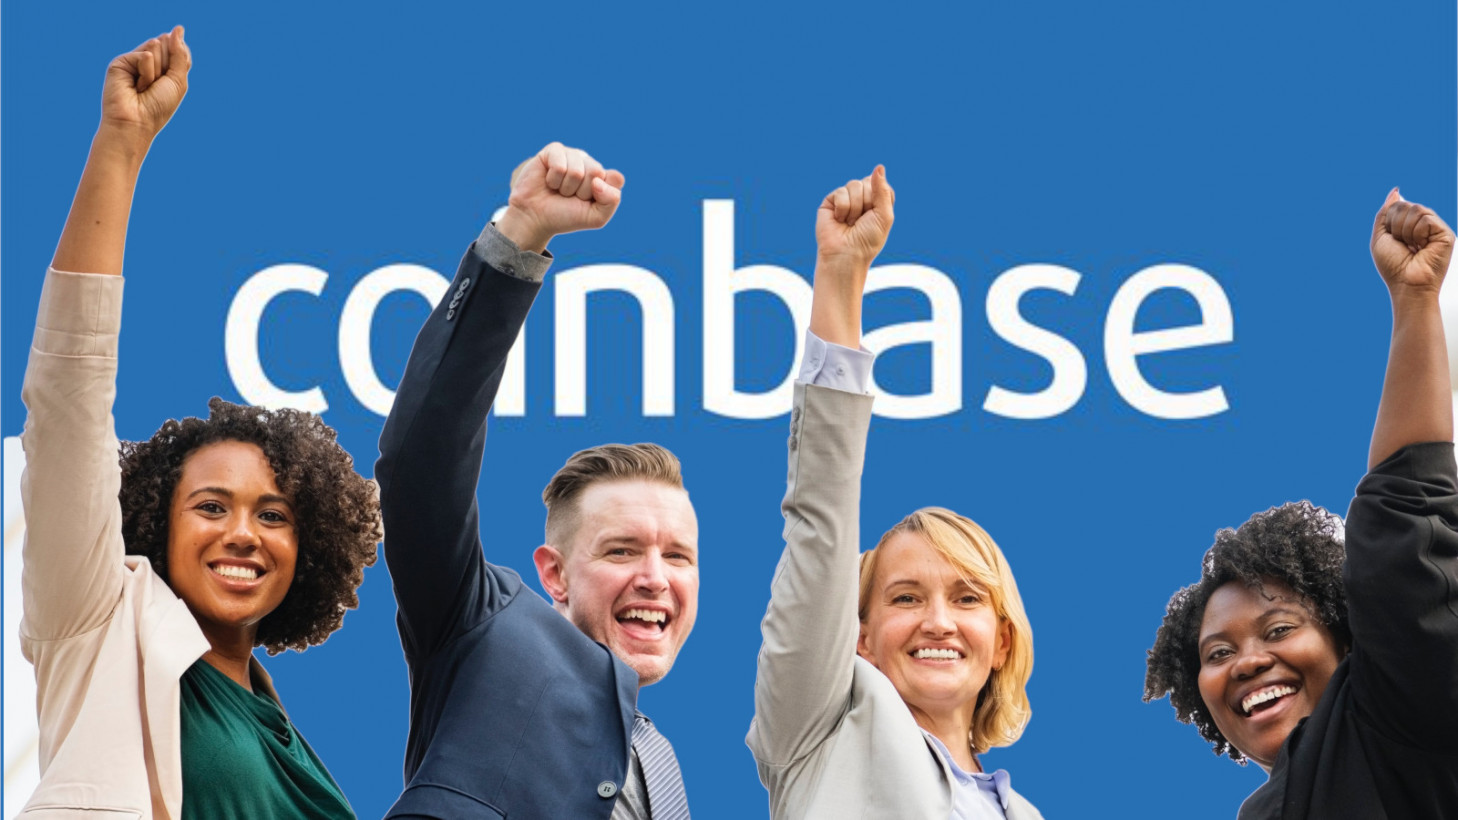 Coinbase surprised its approximately 1700 employees by giving out shares just ahead of its public listing.